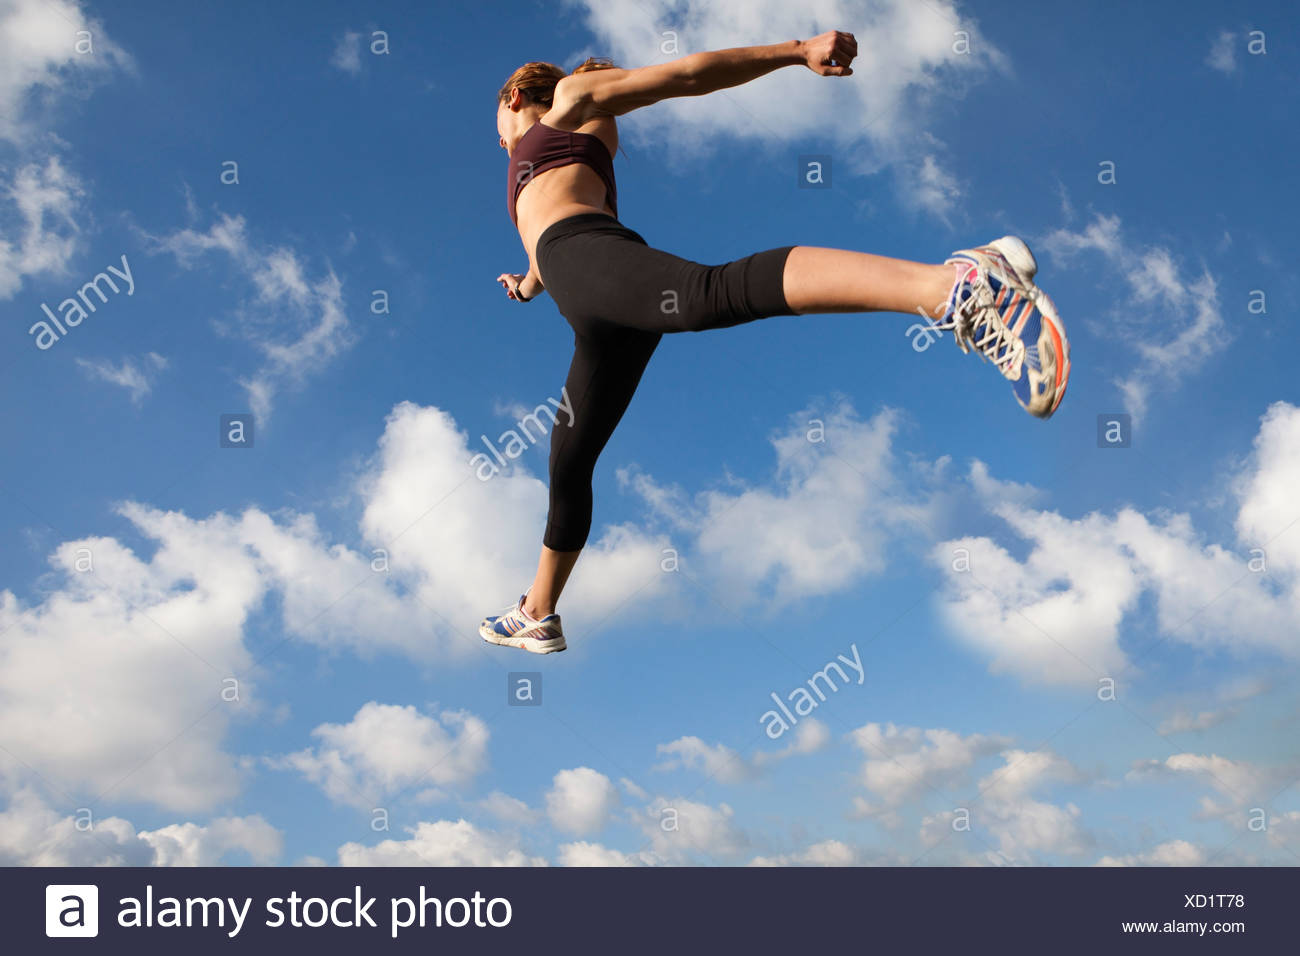 Woman jumping in midair - Stock Image